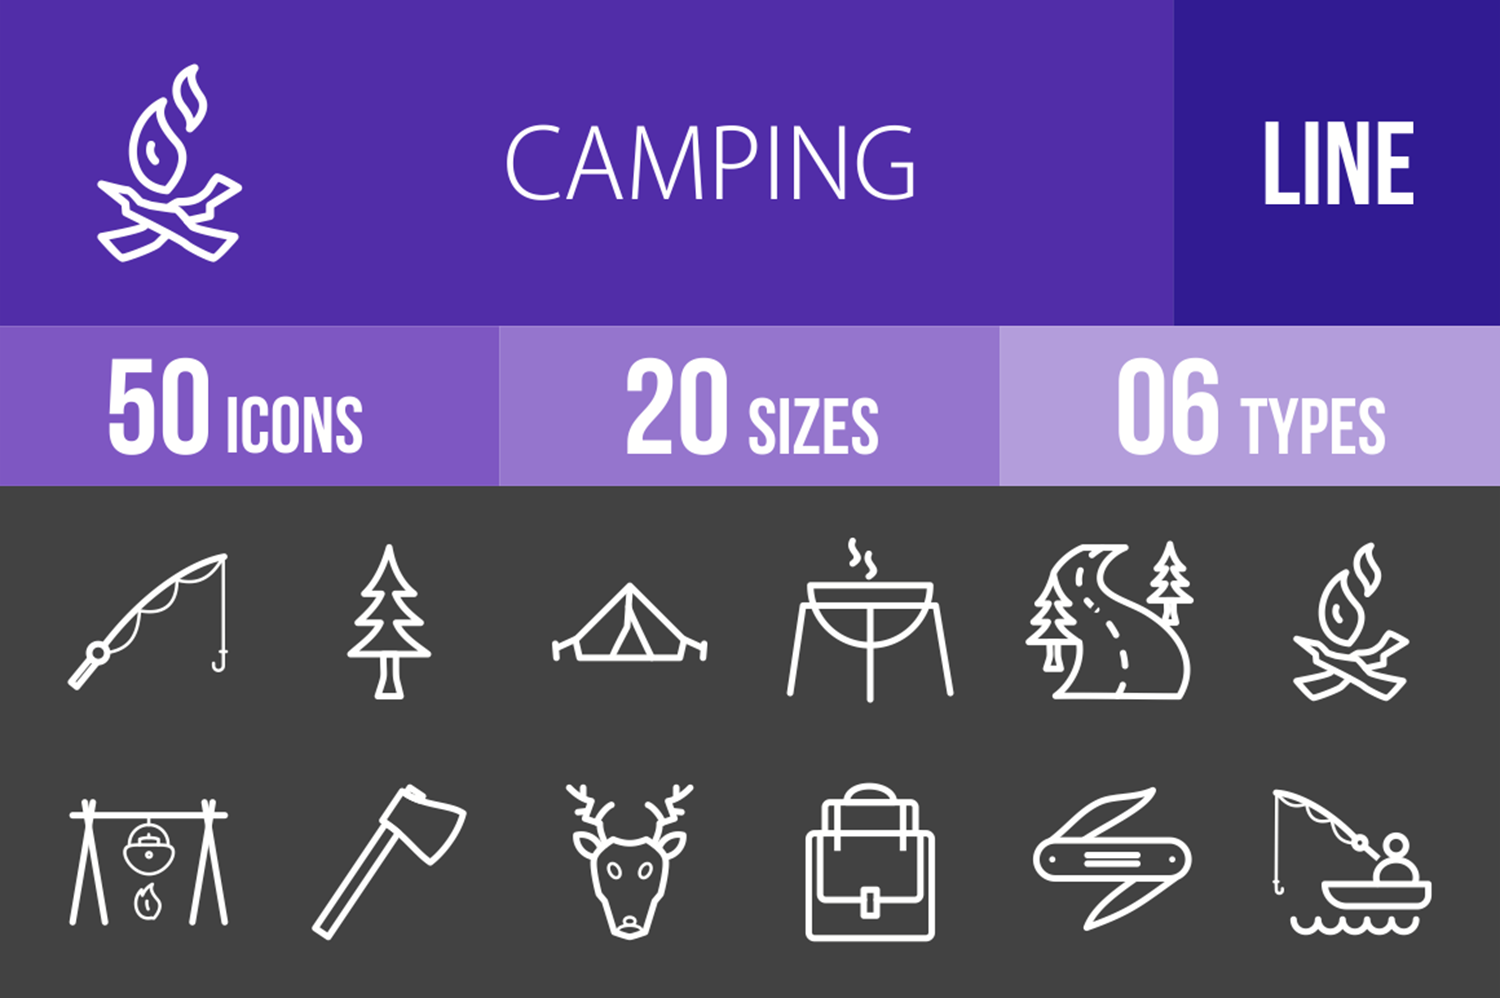 50 Camping Line Inverted Icons example image 1